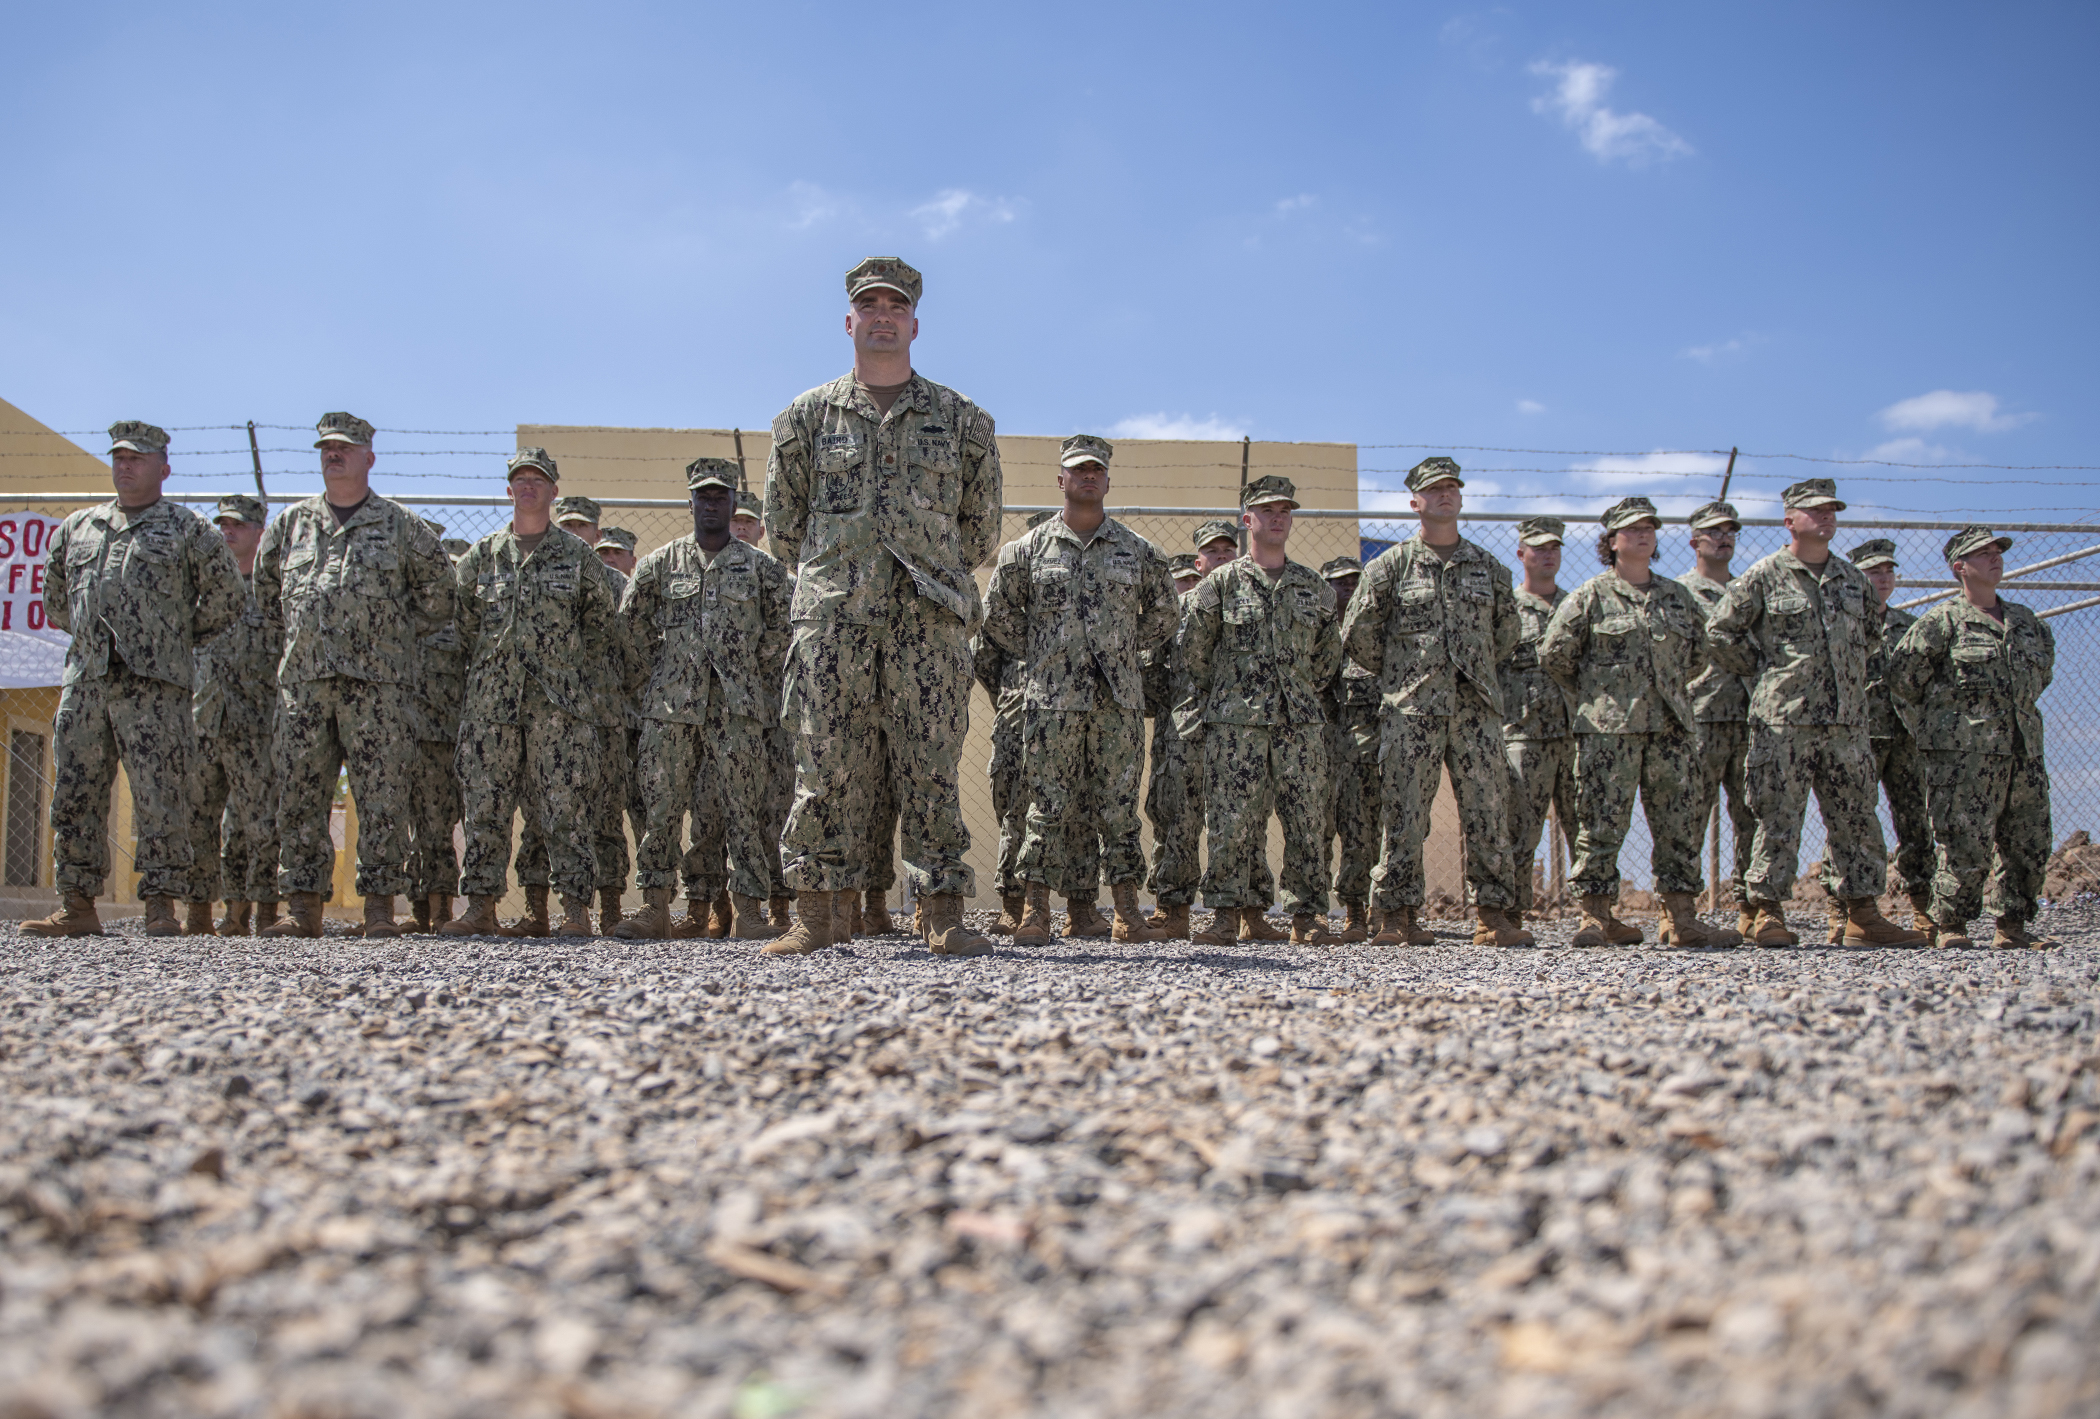 U.S. Navy Seabees from Naval Mobile Construction Battalion 1, assigned to Combined Joint Task Force-Horn of Africa, stand in formation during the Ali Oune Medial Clinic ribbon cutting ceremony in Ali Oune, Djibouti, Jan. 31, 2019. The clinic, which the Seabees have worked on for five months, is intended to enhance the Ministry of Health for Djibouti's ability to provide basic medical, birth and after care to the Ali Oune village and its more than 1,000 residents and rural neighbors. (U.S. Air Force photo by Tech. Sgt. Shawn Nickel)